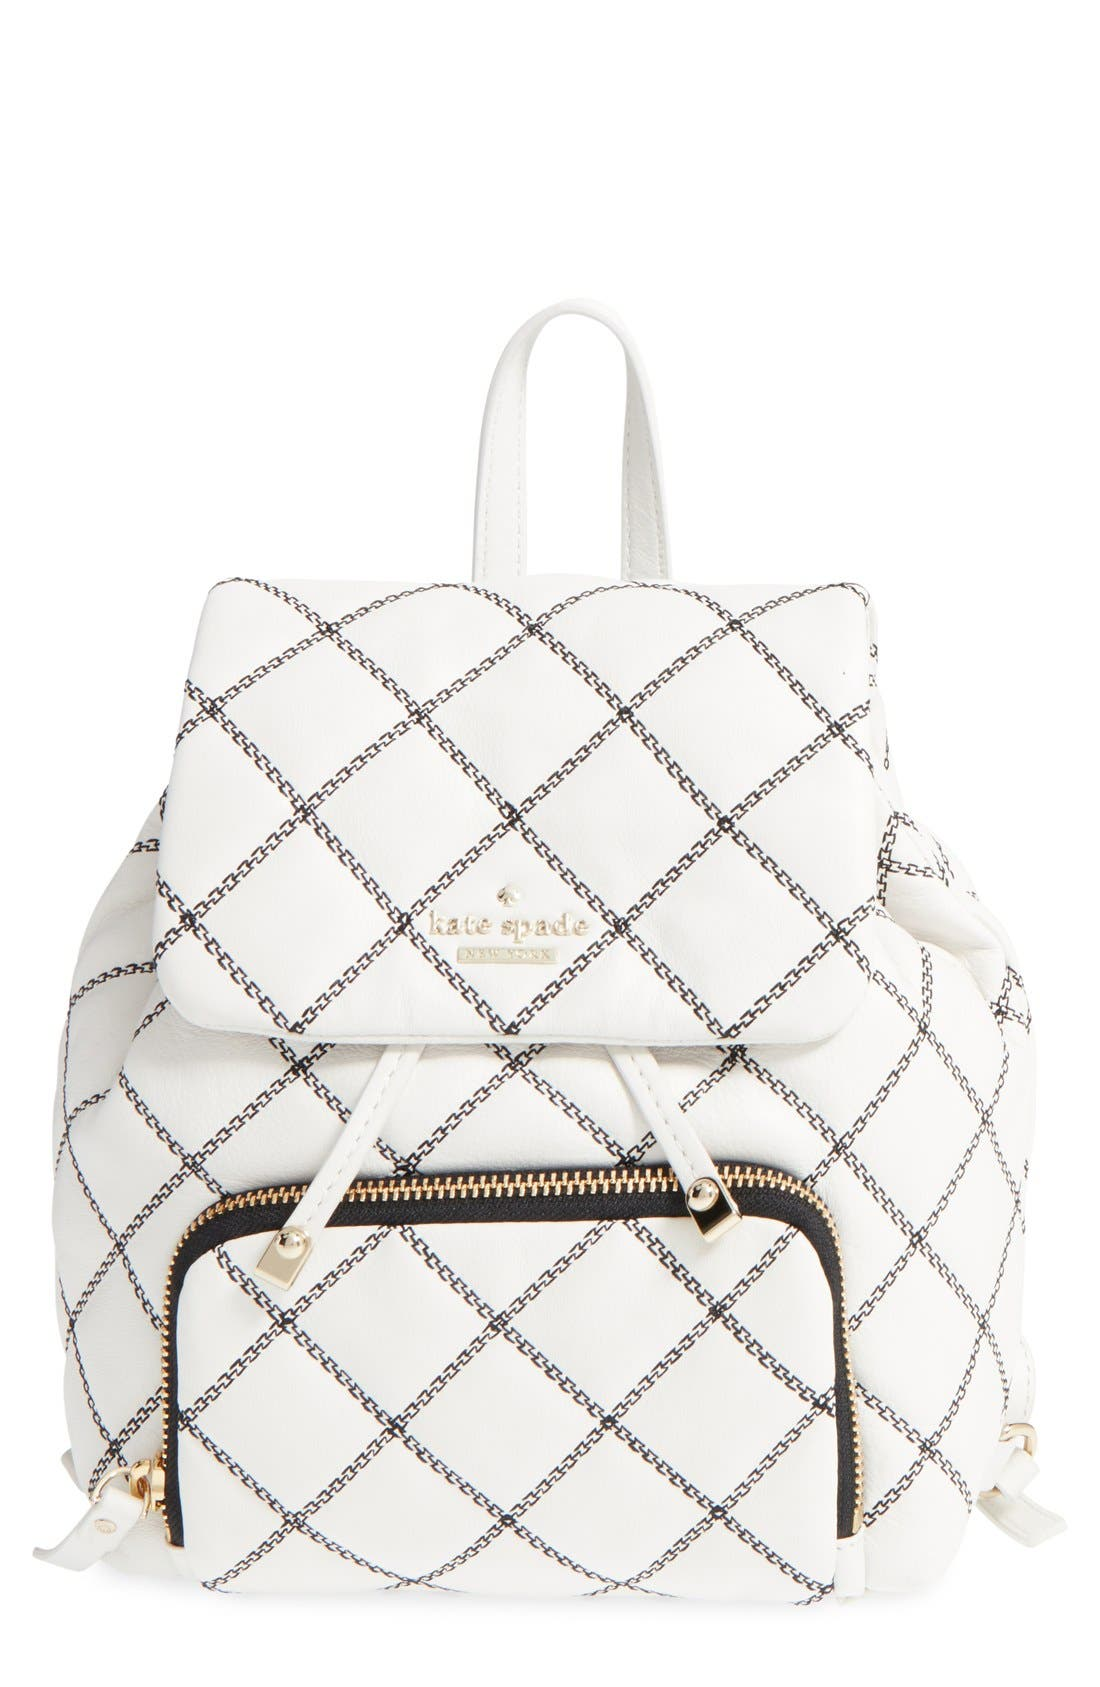 Alternate Image 1 Selected - kate spade new york 'emerson place - jessa' quilted leather backpack